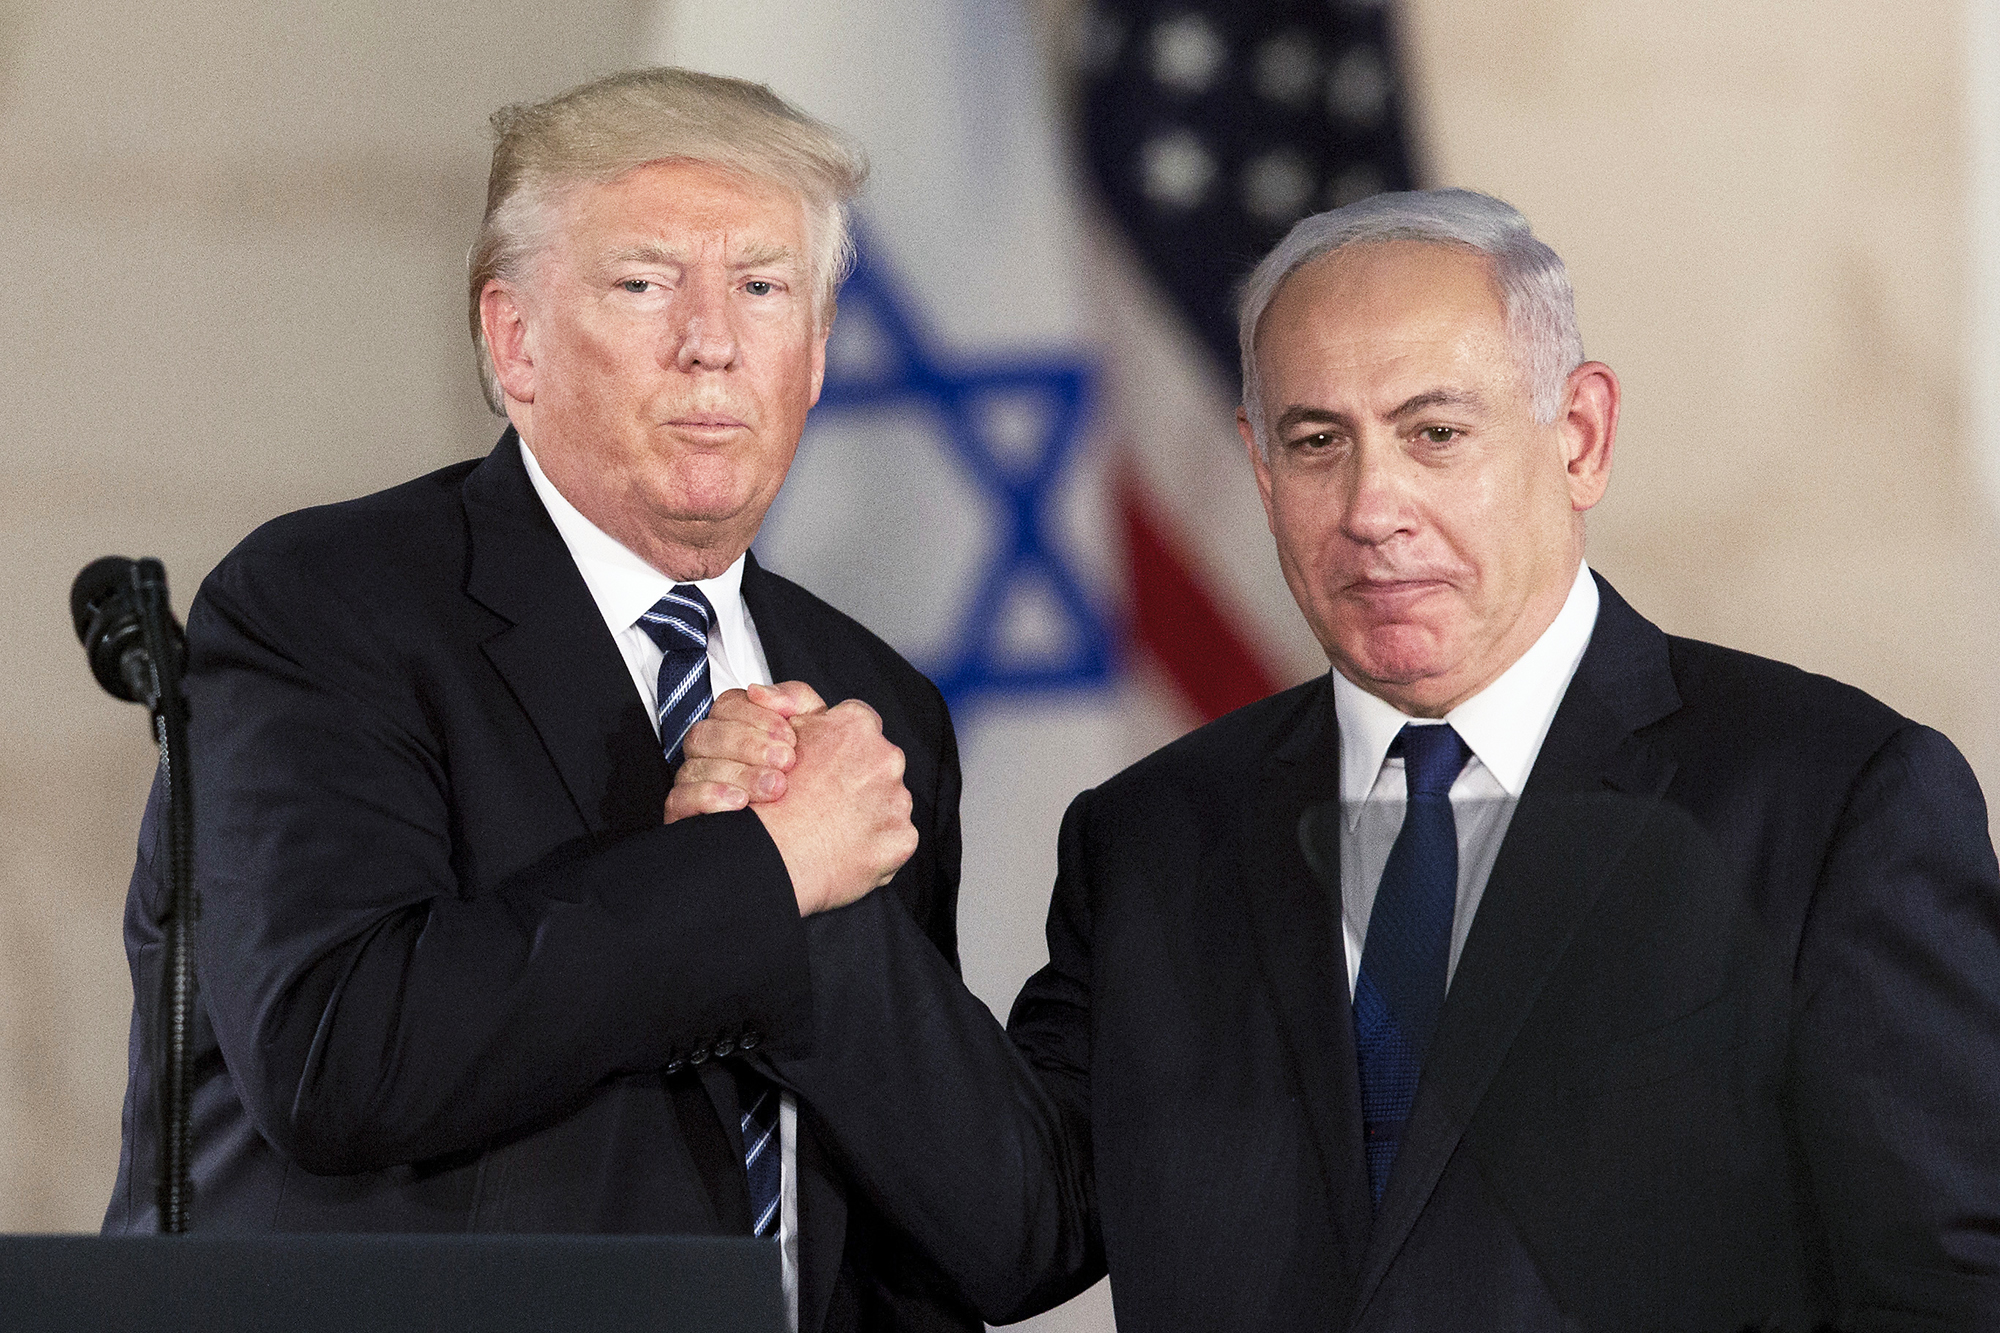 Donald Trump and Israeli Prime Minister Benjamin Netanyahu shake hands at the Israel museum in Jerusalem, on May 23, 2017.